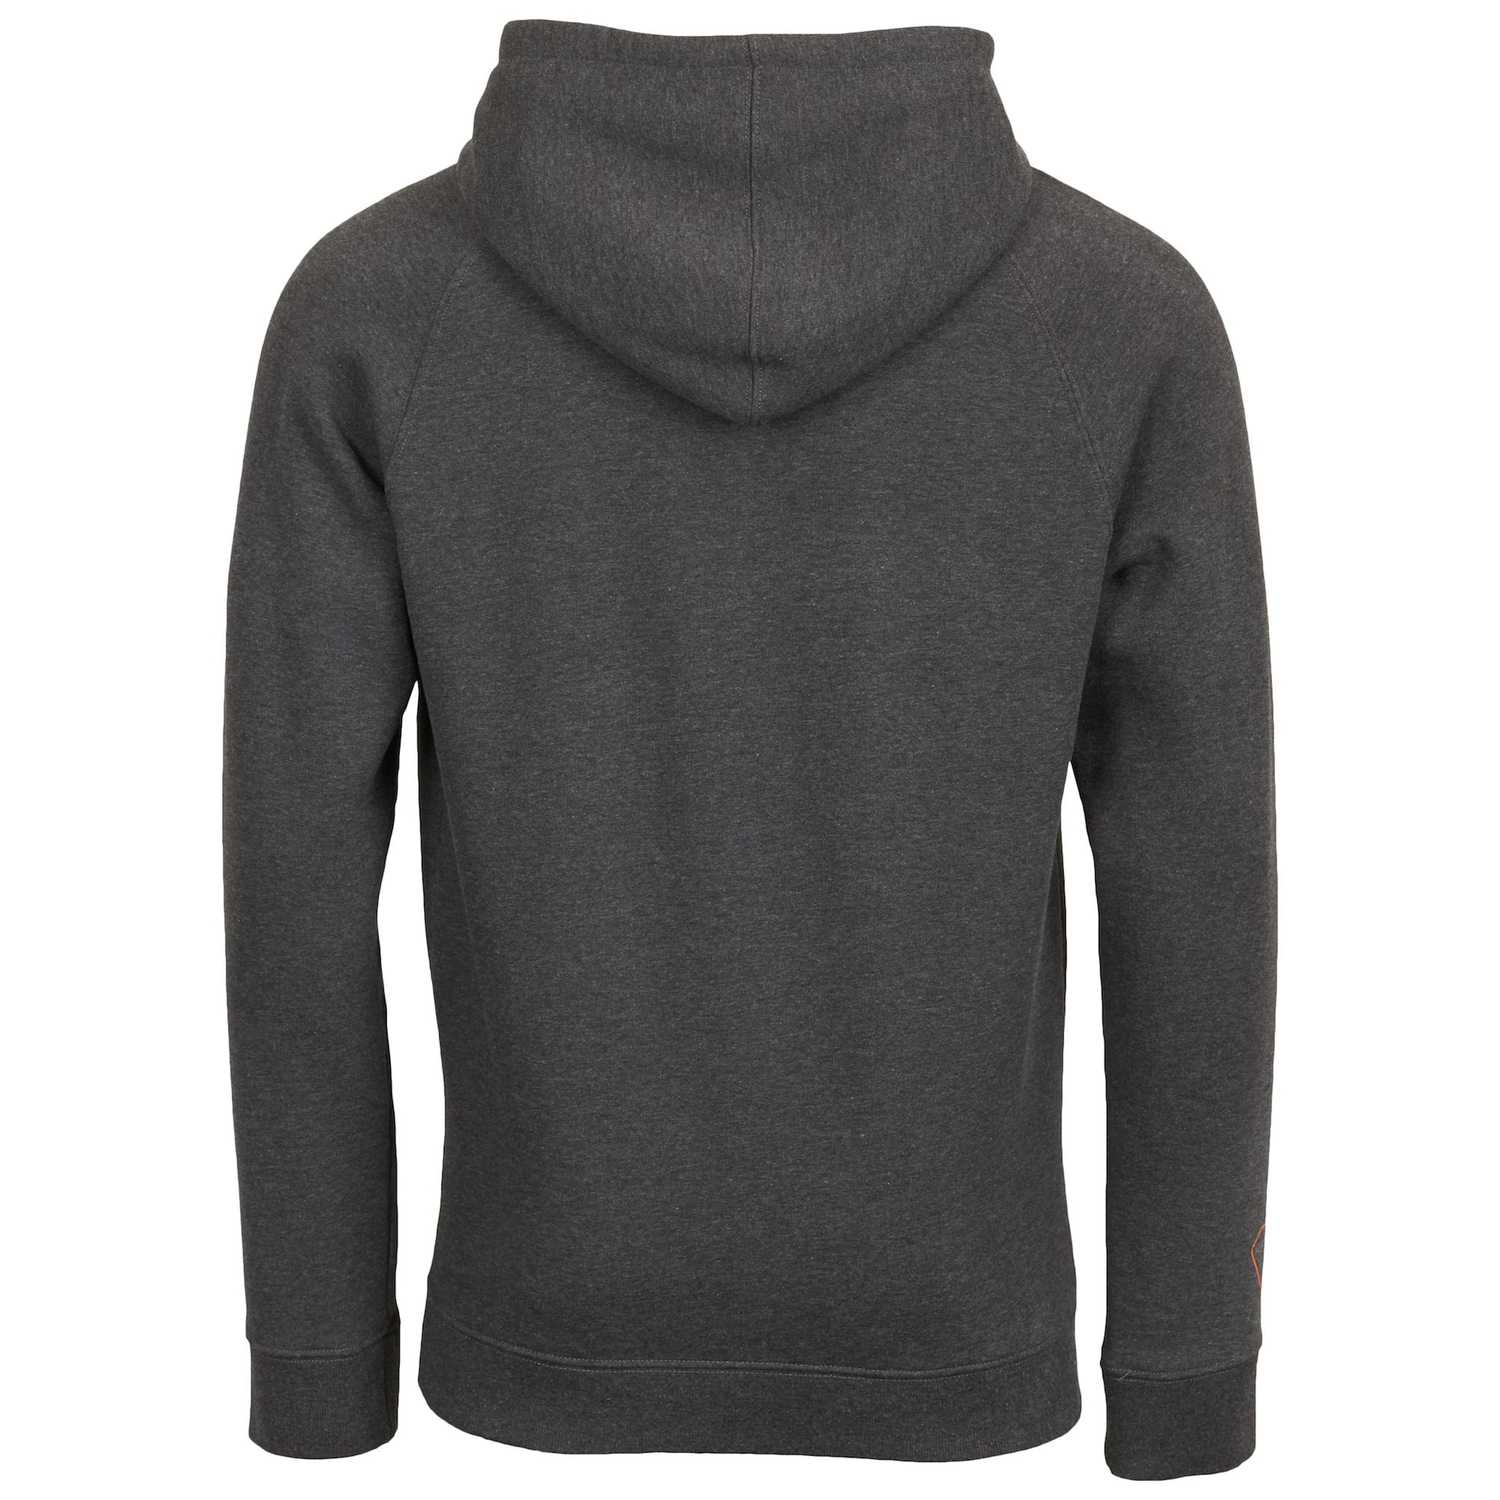 HOODED SWEATSHIRT ANTHRACITE HEATHER XL